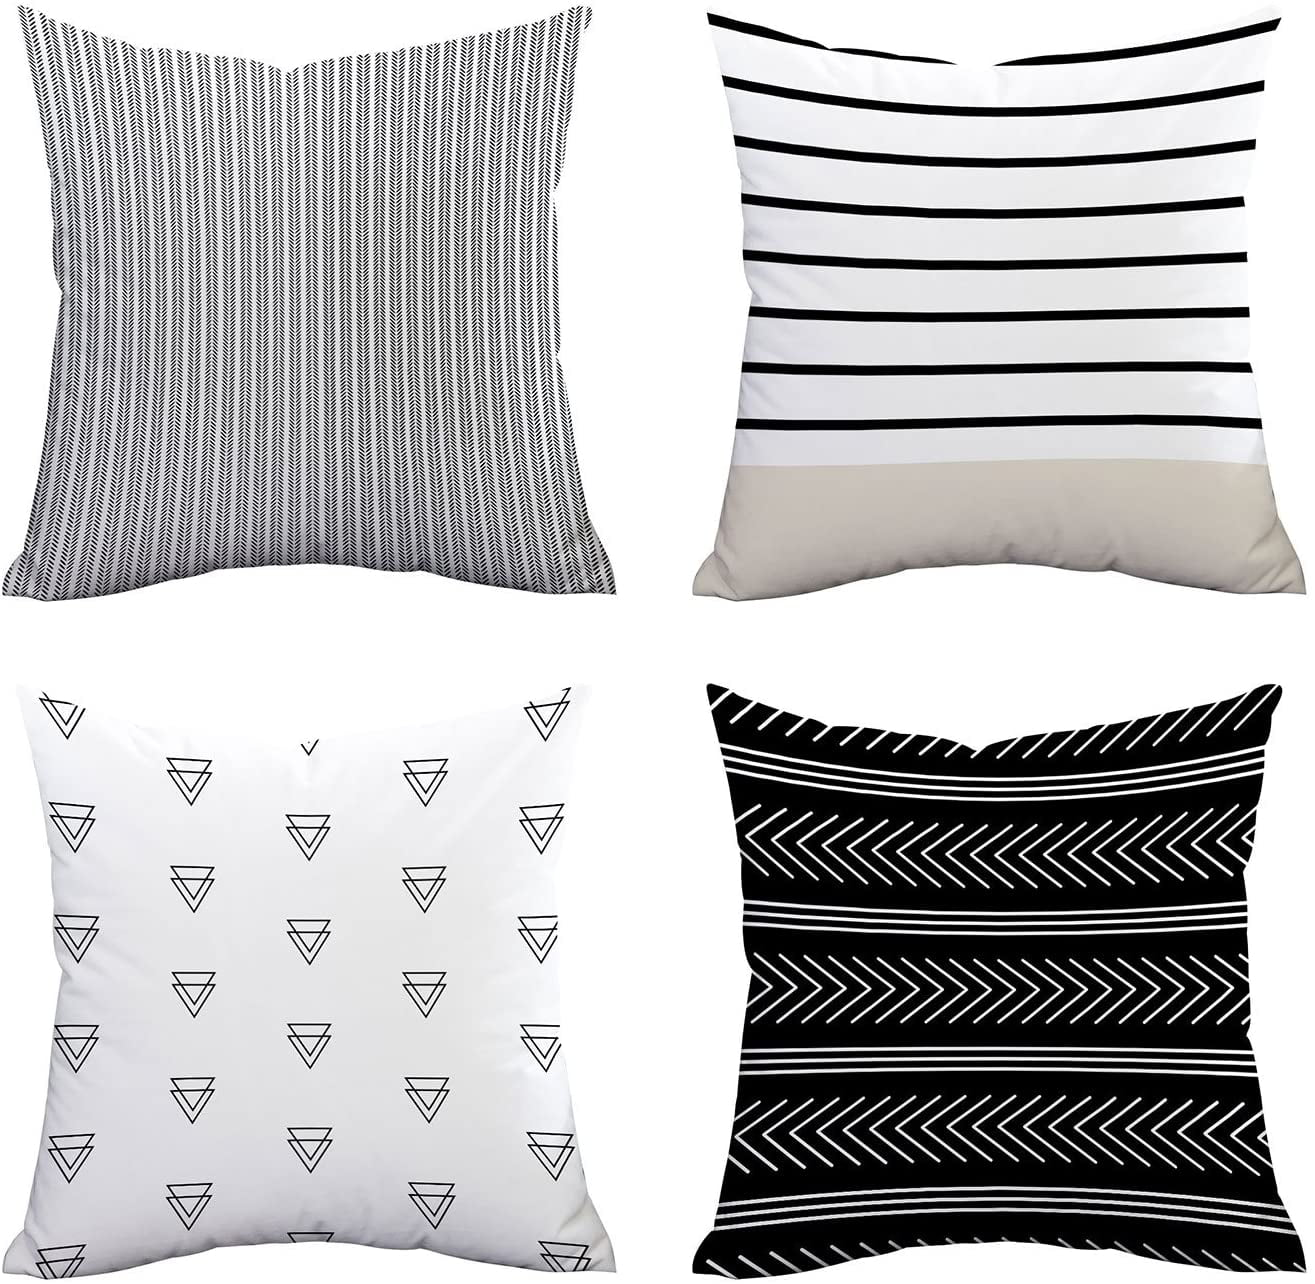 Pillow Covers Set Of 4 Stripe Pattern Throw Pillow Case Daily Decorations Sofa Throw Pillow Case Cushion Covers Zippered Pillowcase 20 X 20 By Buythrow Walmart Com Walmart Com